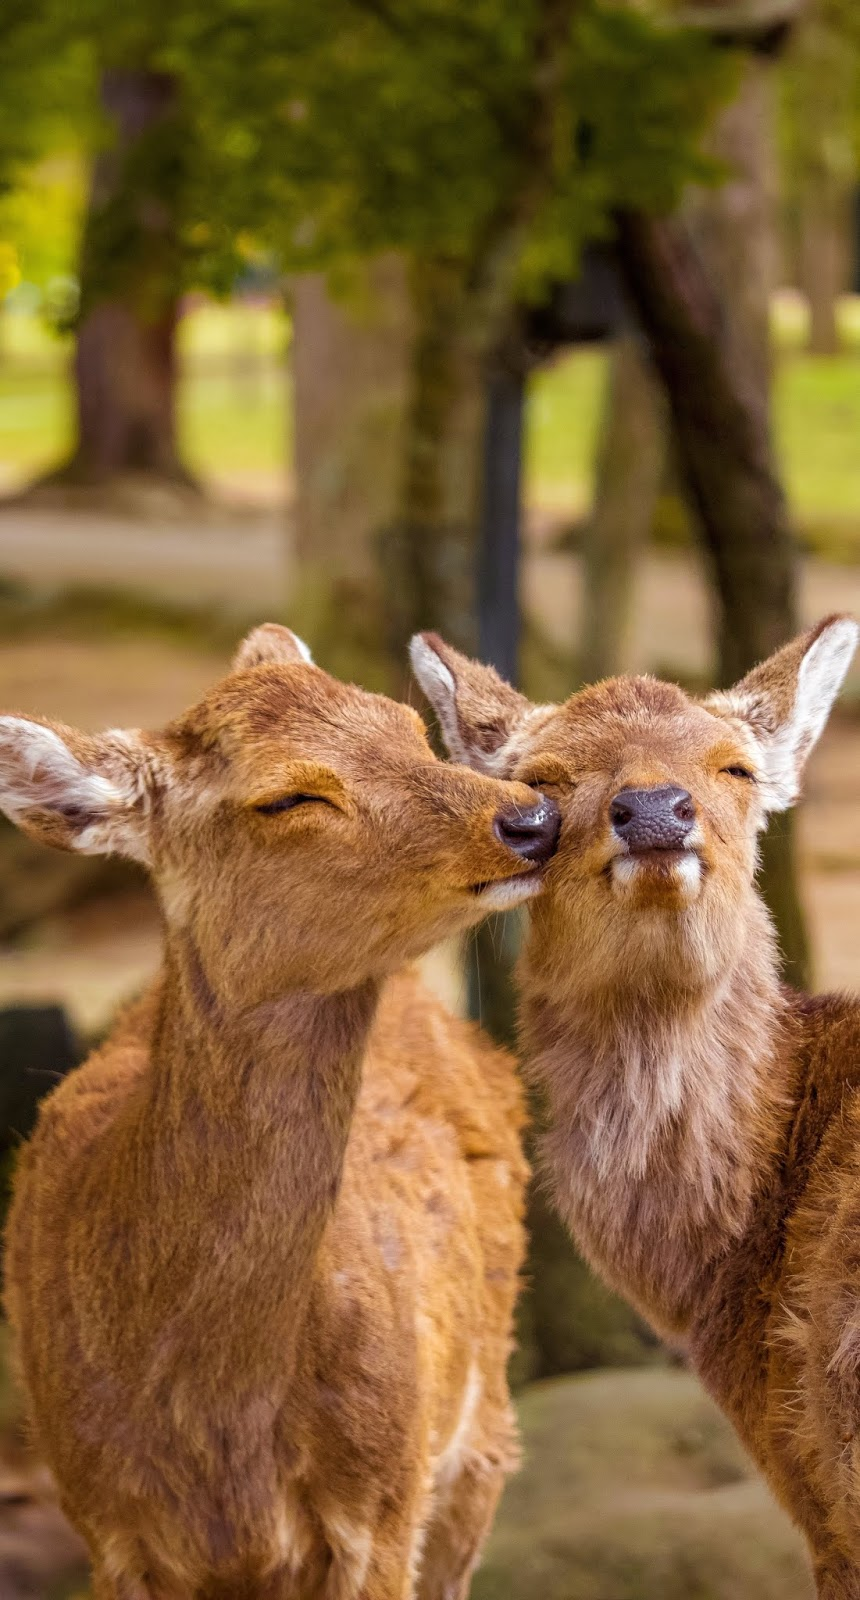 Cute pair of deer displaying their affection.